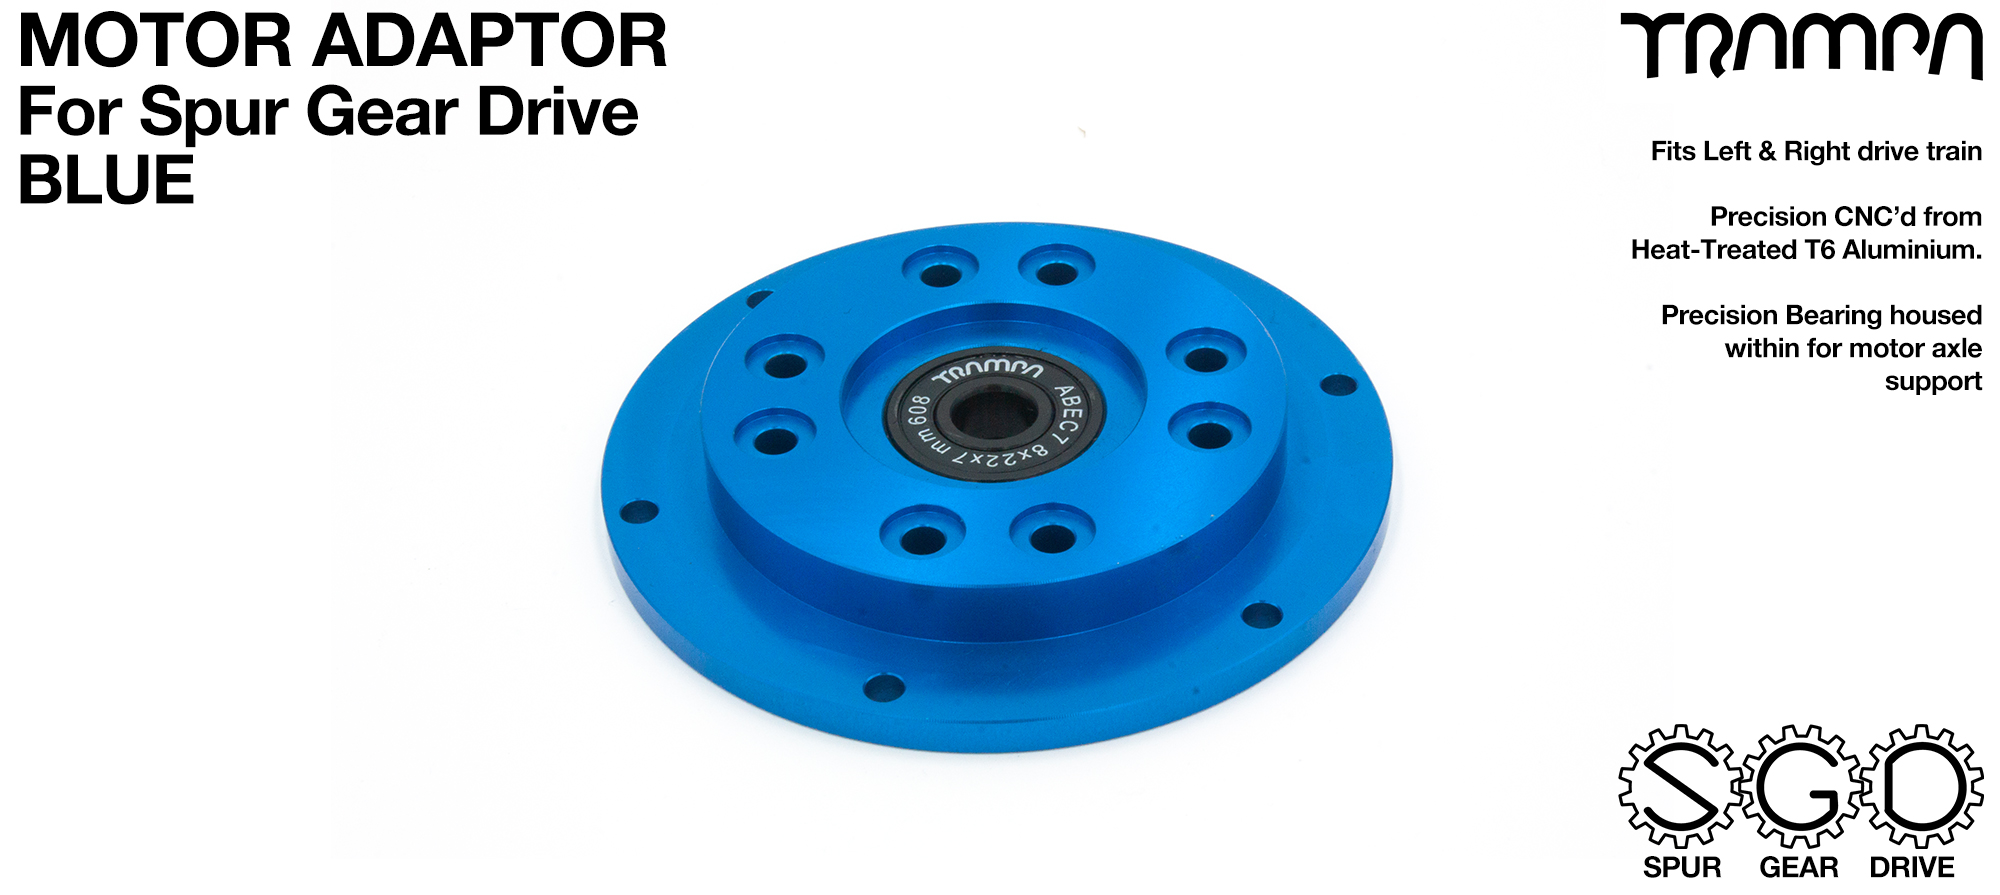 Motor Adapter Plate - BLUE